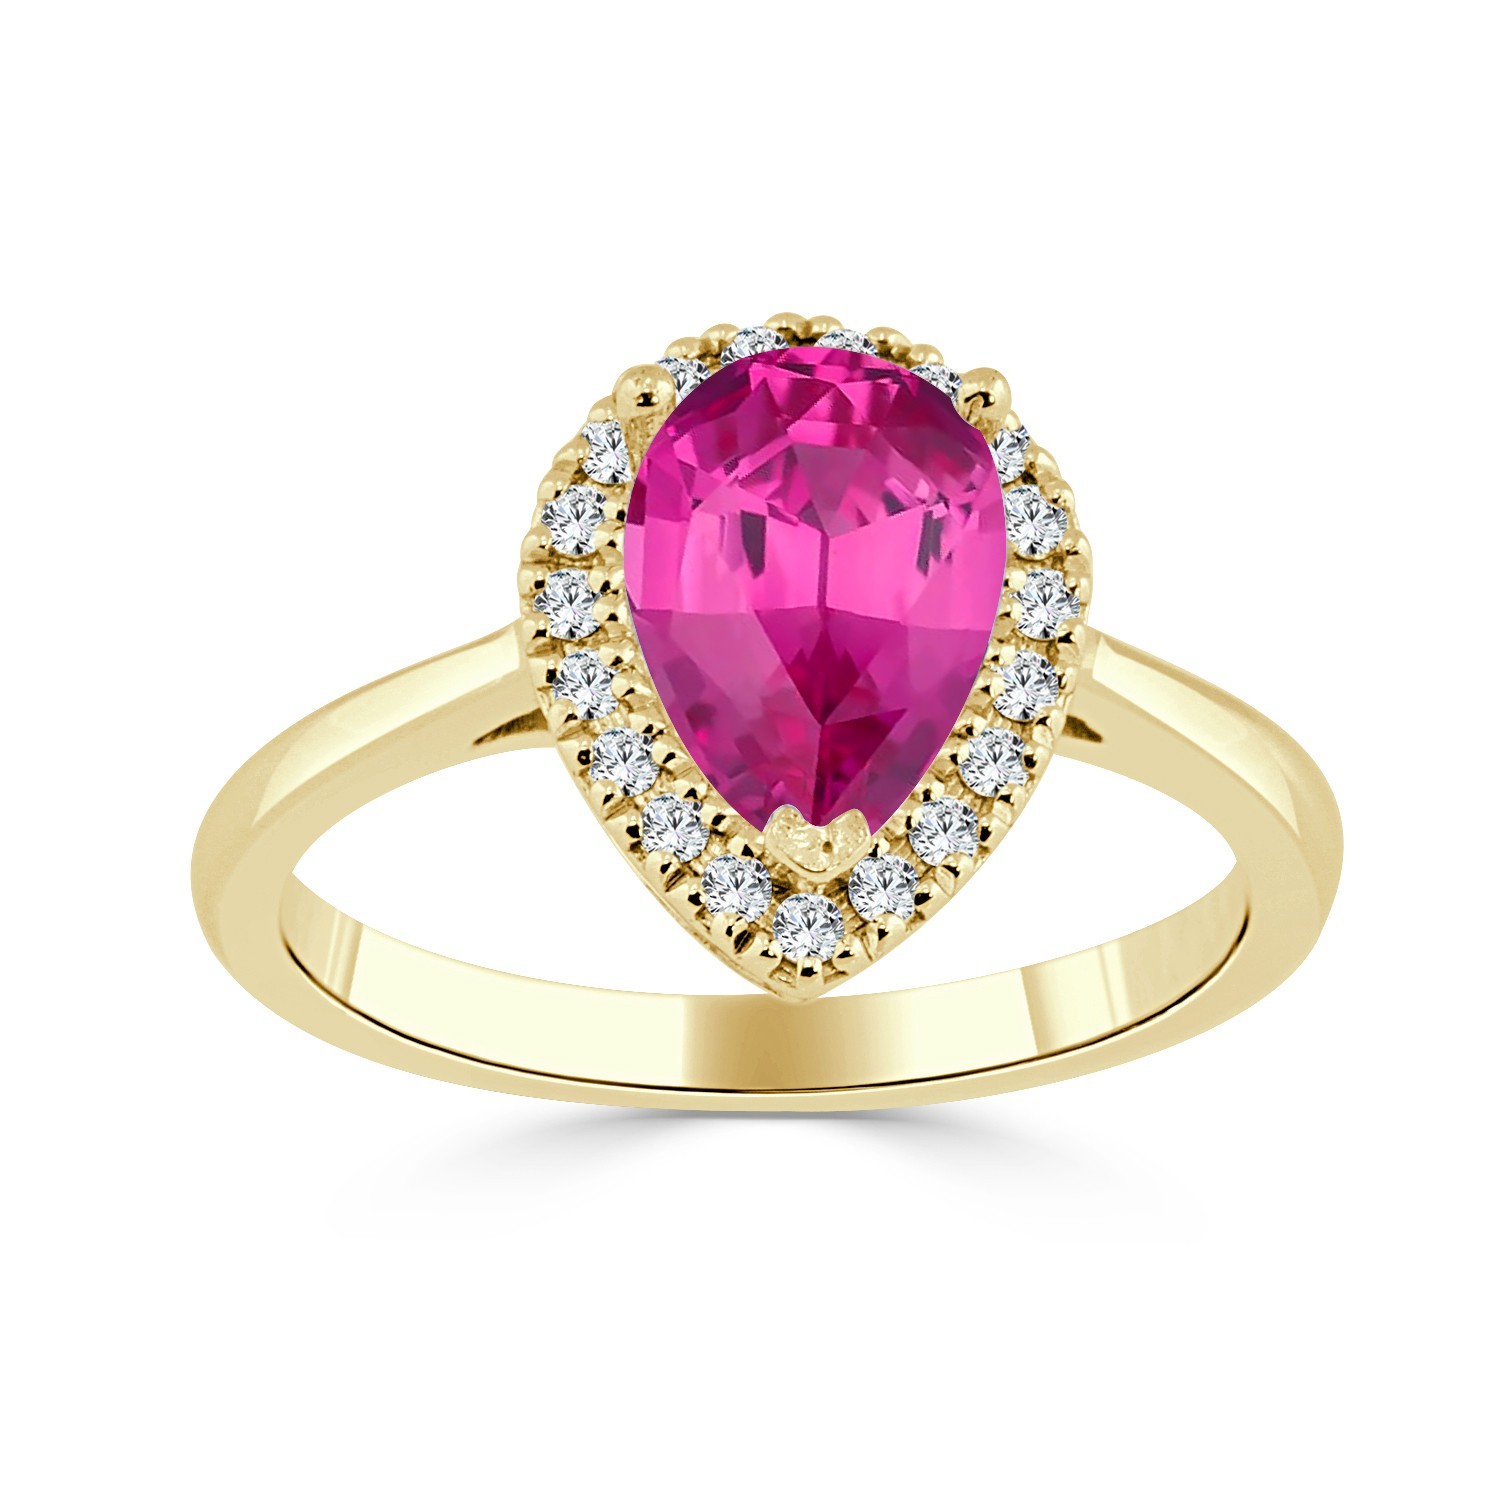 Certified 14k Yellow Gold Pear Shape Pink Sapphire Halo Ring 1 1/6 ct. tw. (Pink, AAA)